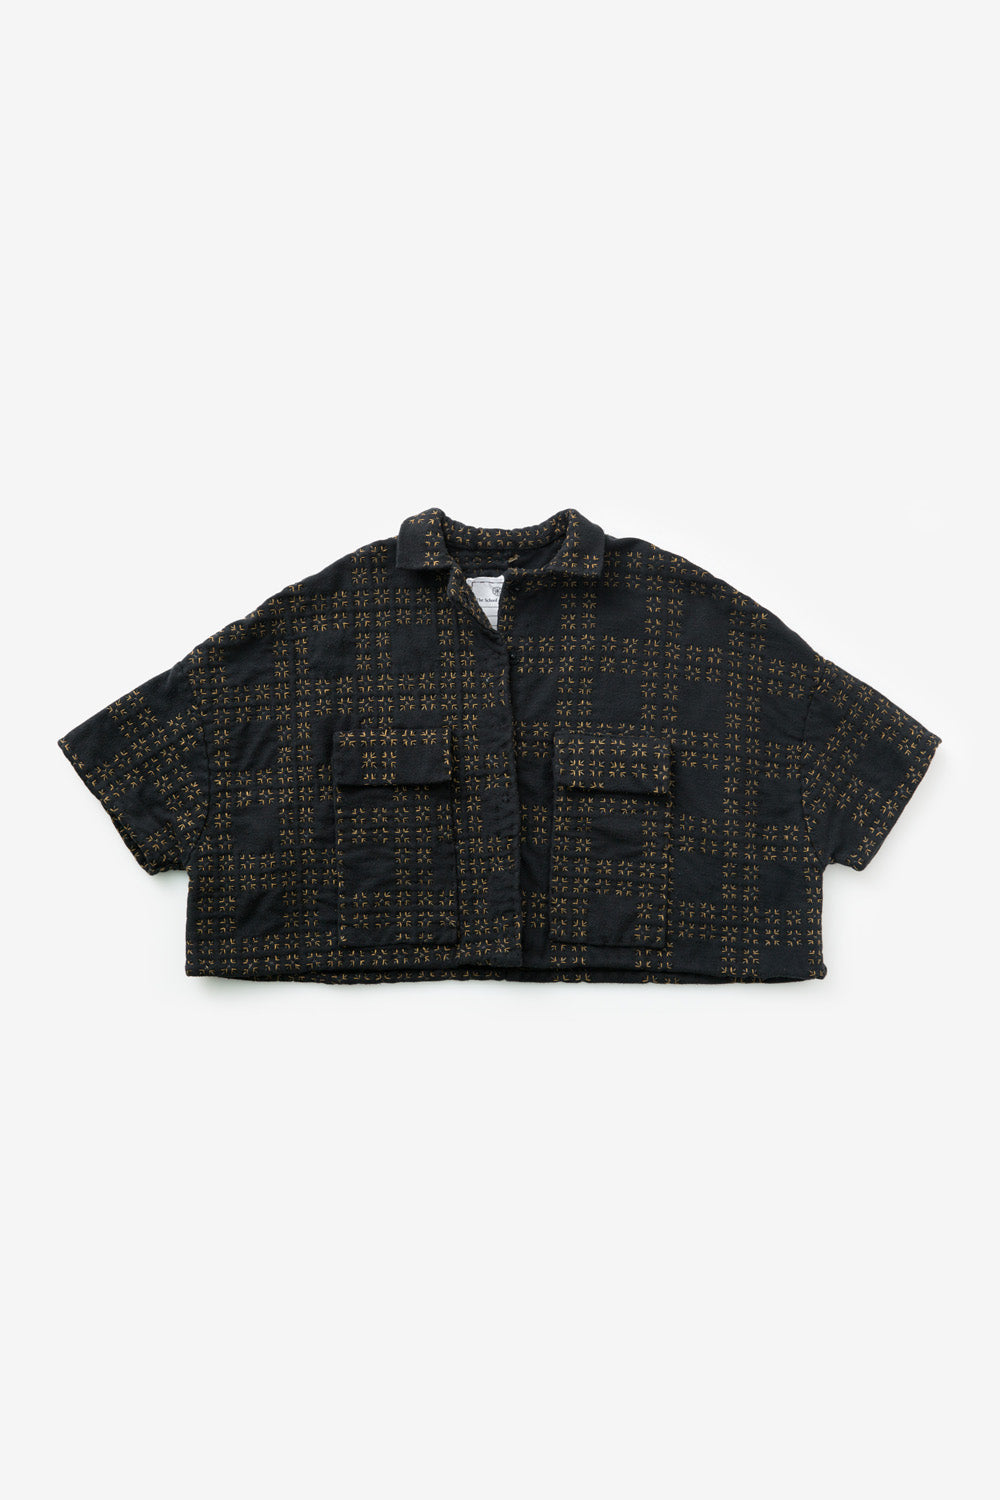 The School of Making The Cropped Car Jacket  with Elbow Sleeves In Black